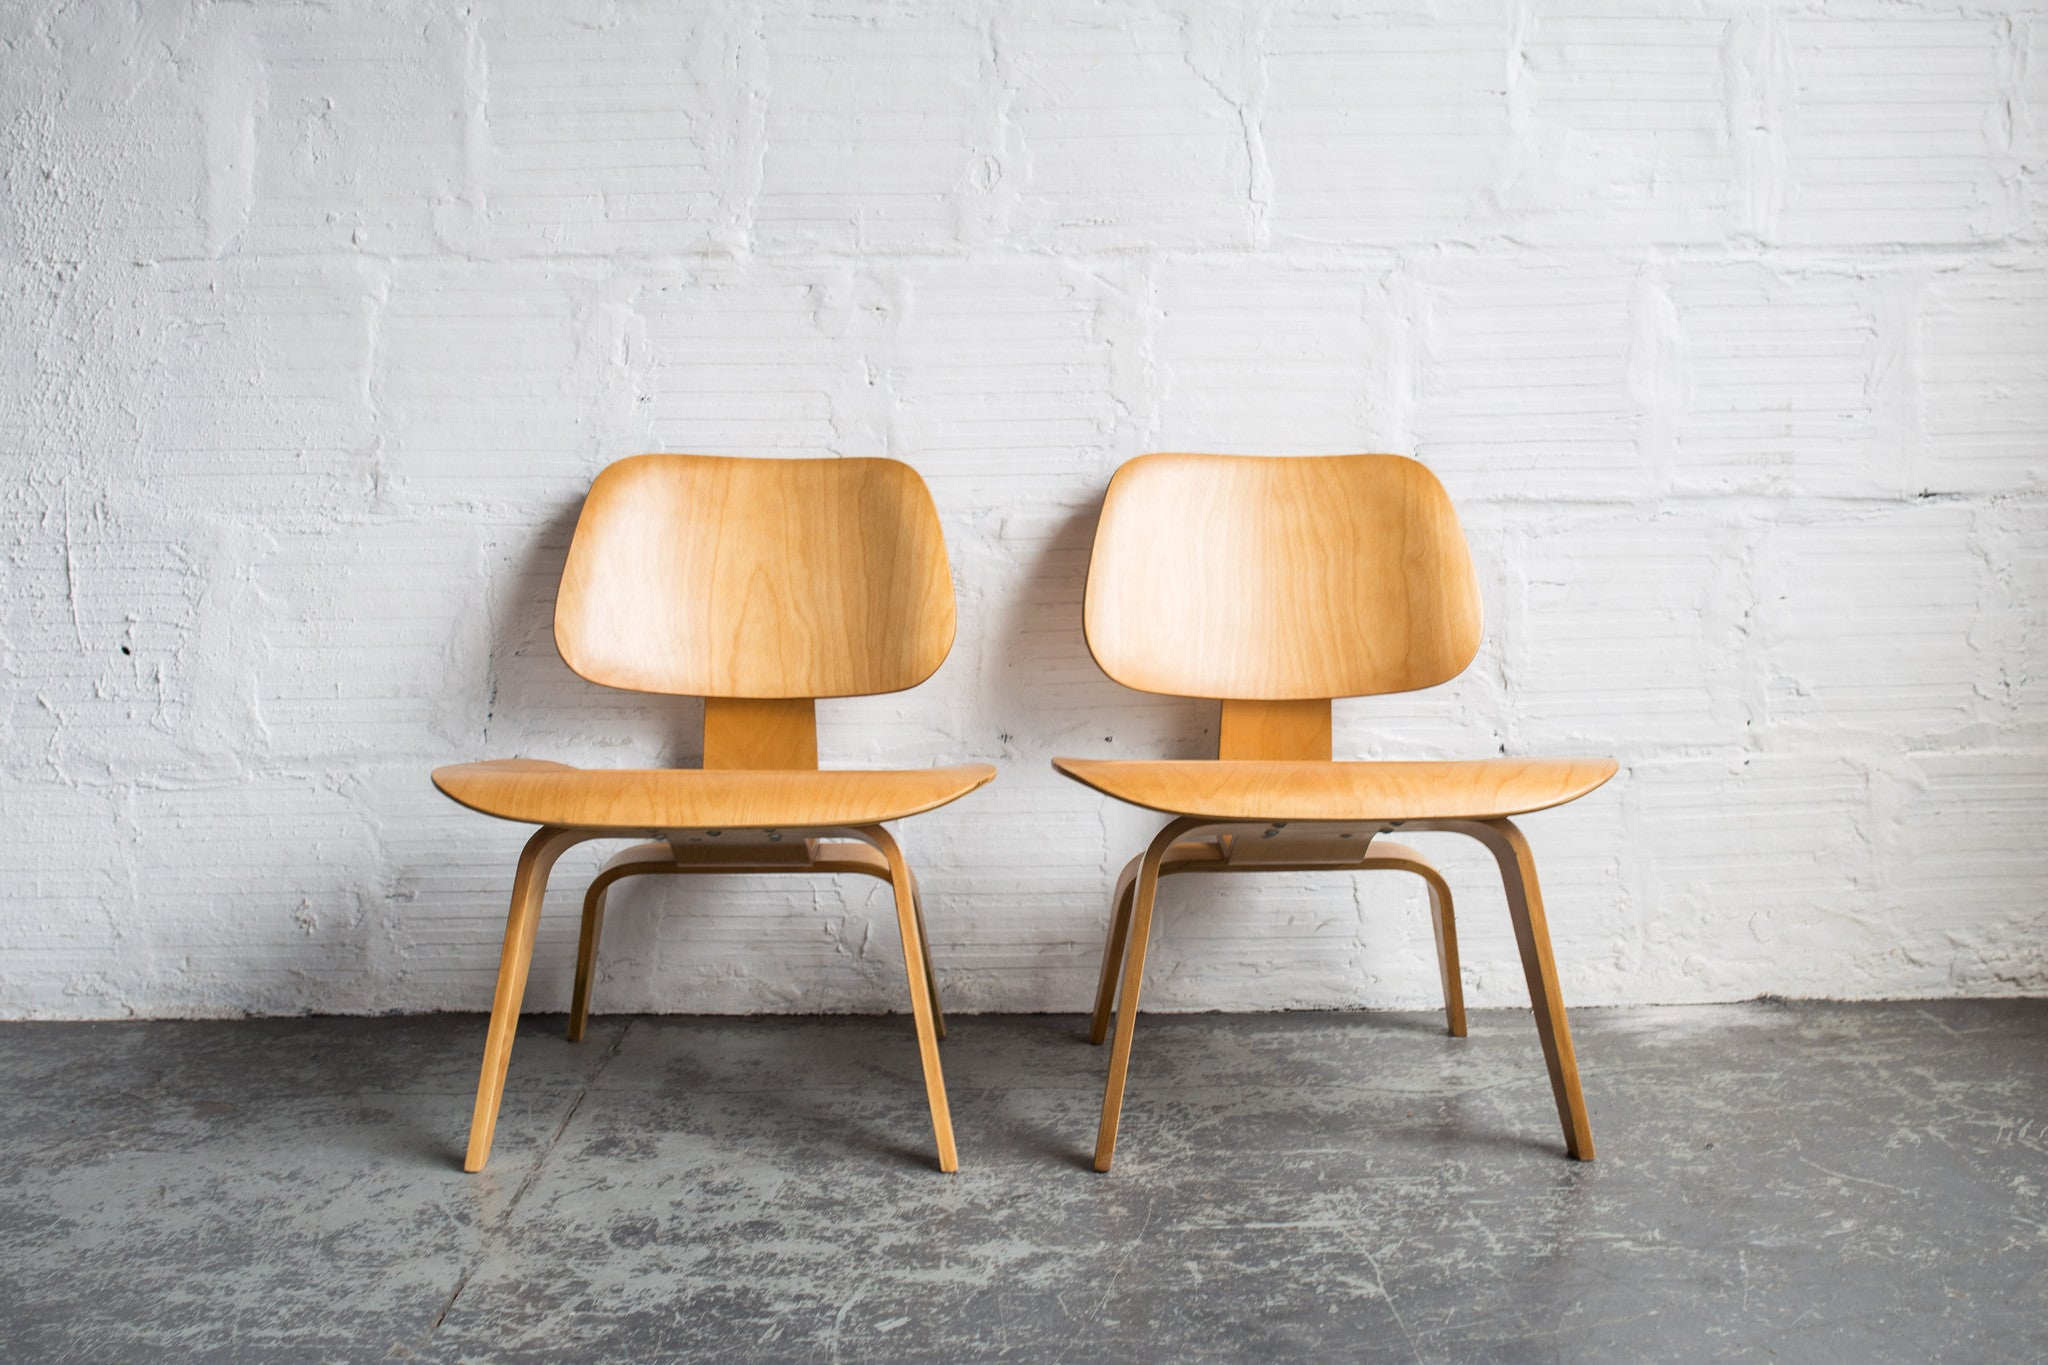 Vintage Eames LCW Chairs (1st Generation)